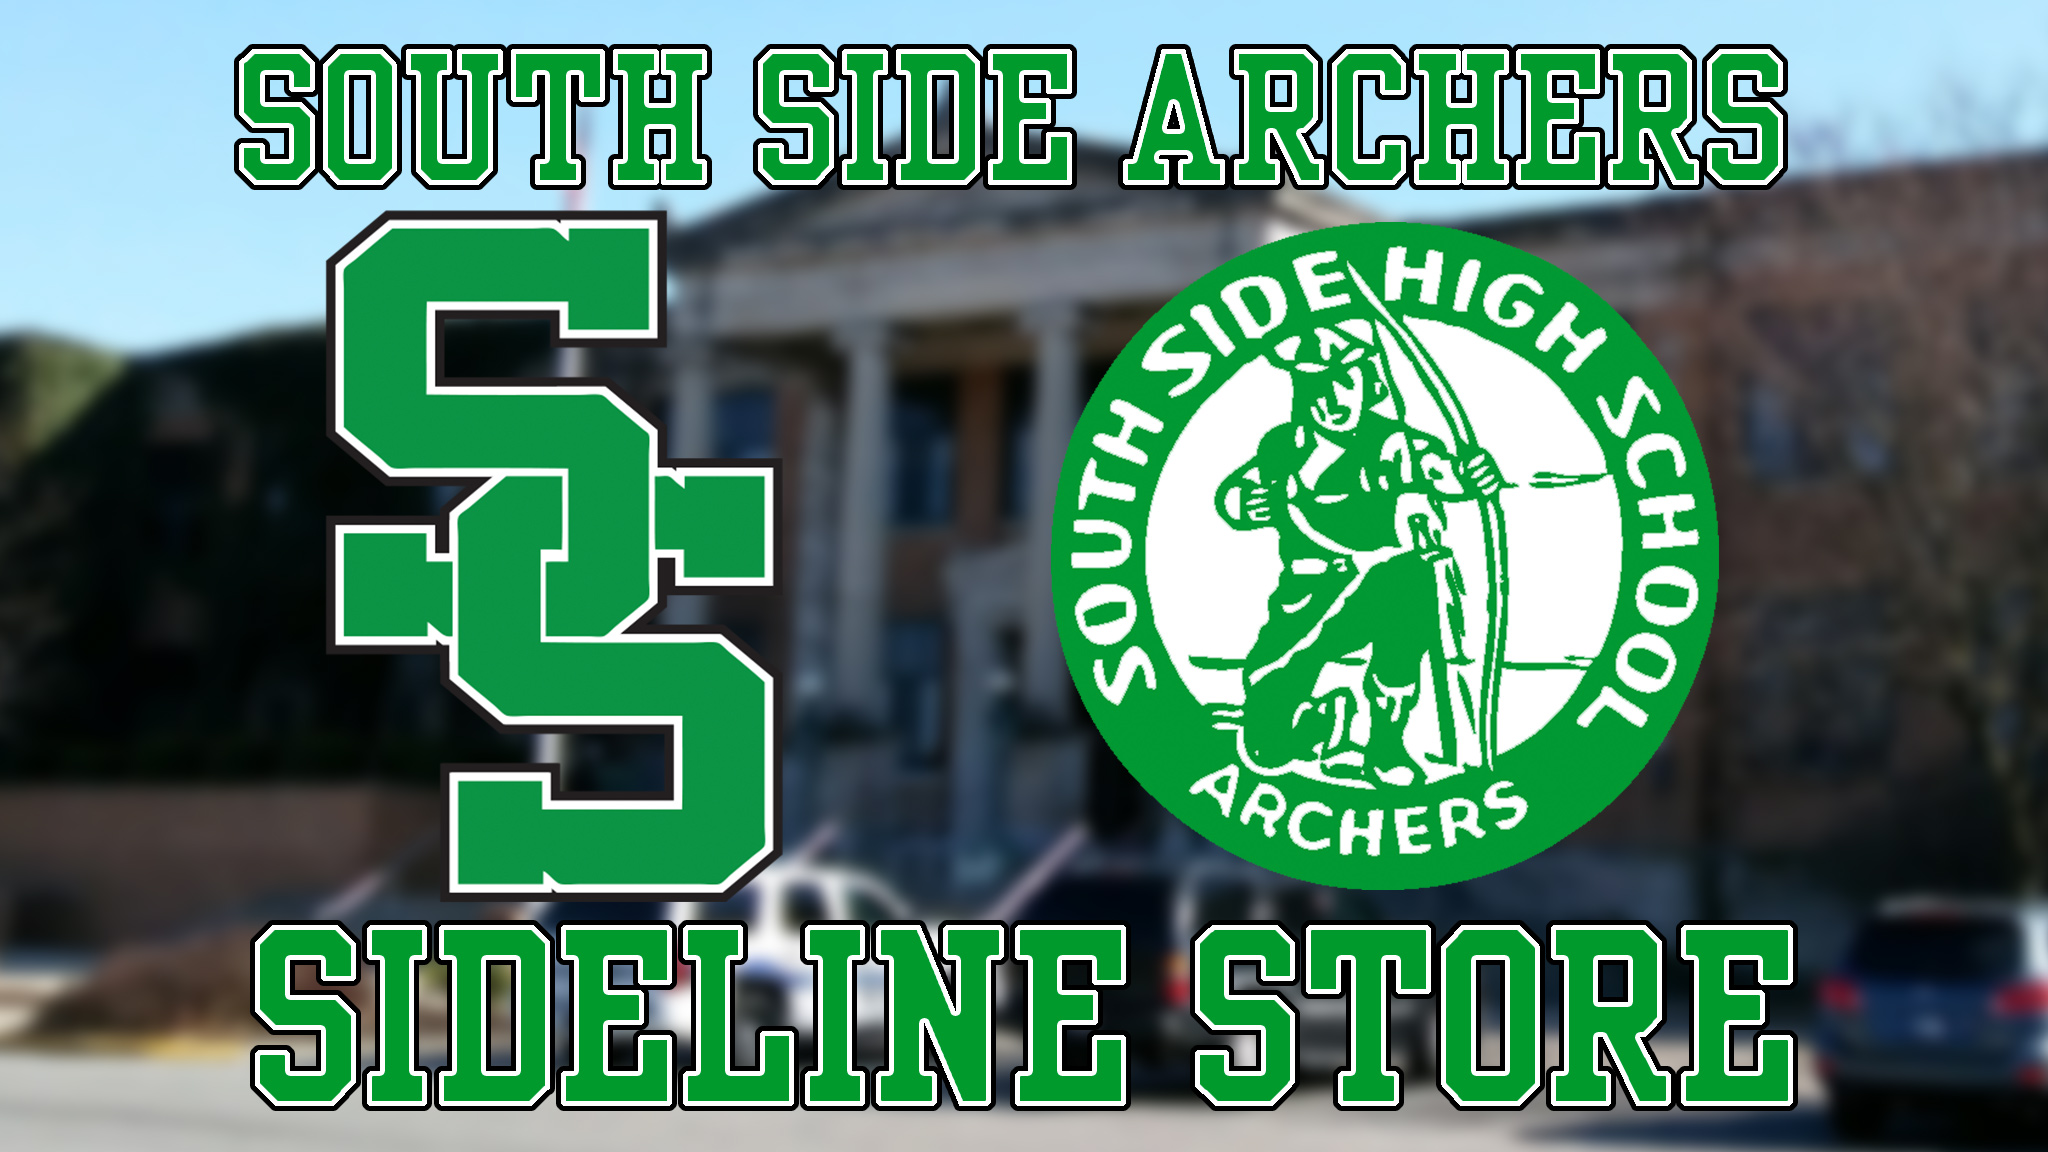 South Side Archers Sideline Store Information